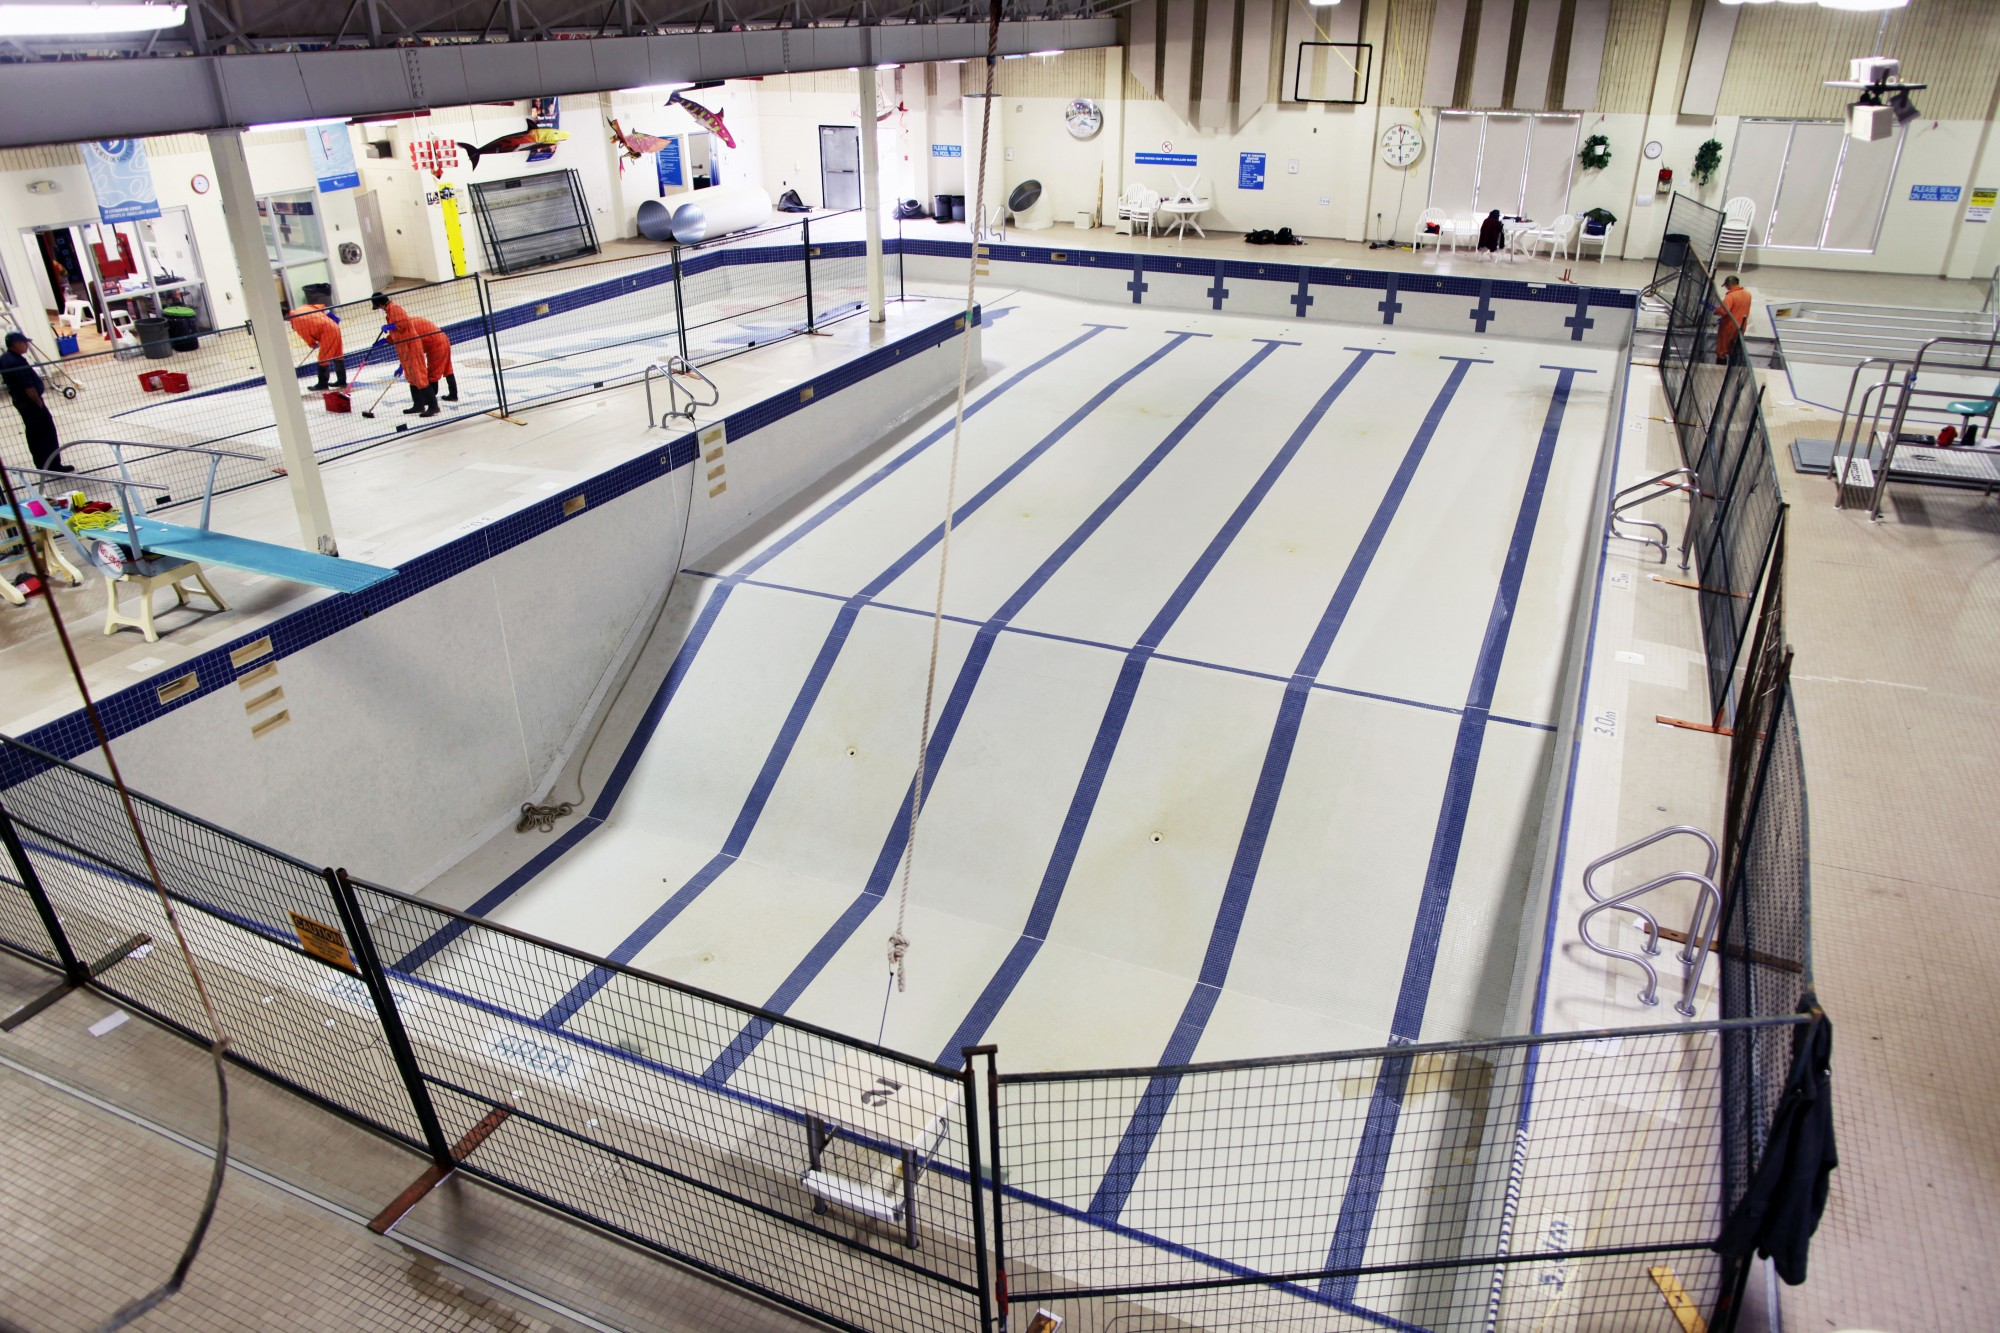 The pool had to be completely drained in order to be properly cleaned.